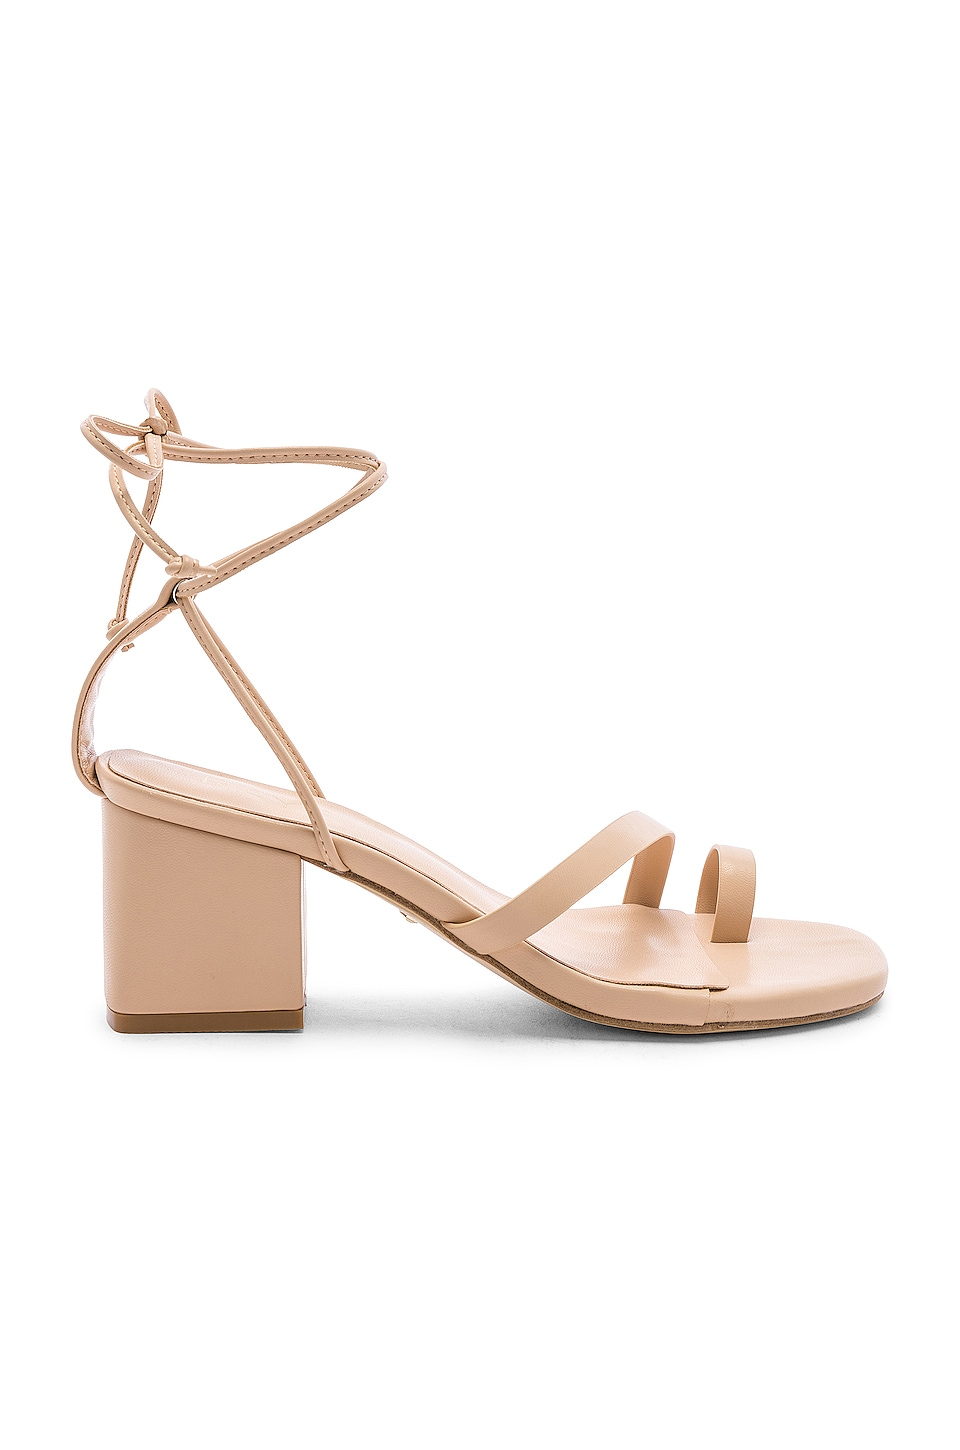 RAYE Sussex Heel in Nude